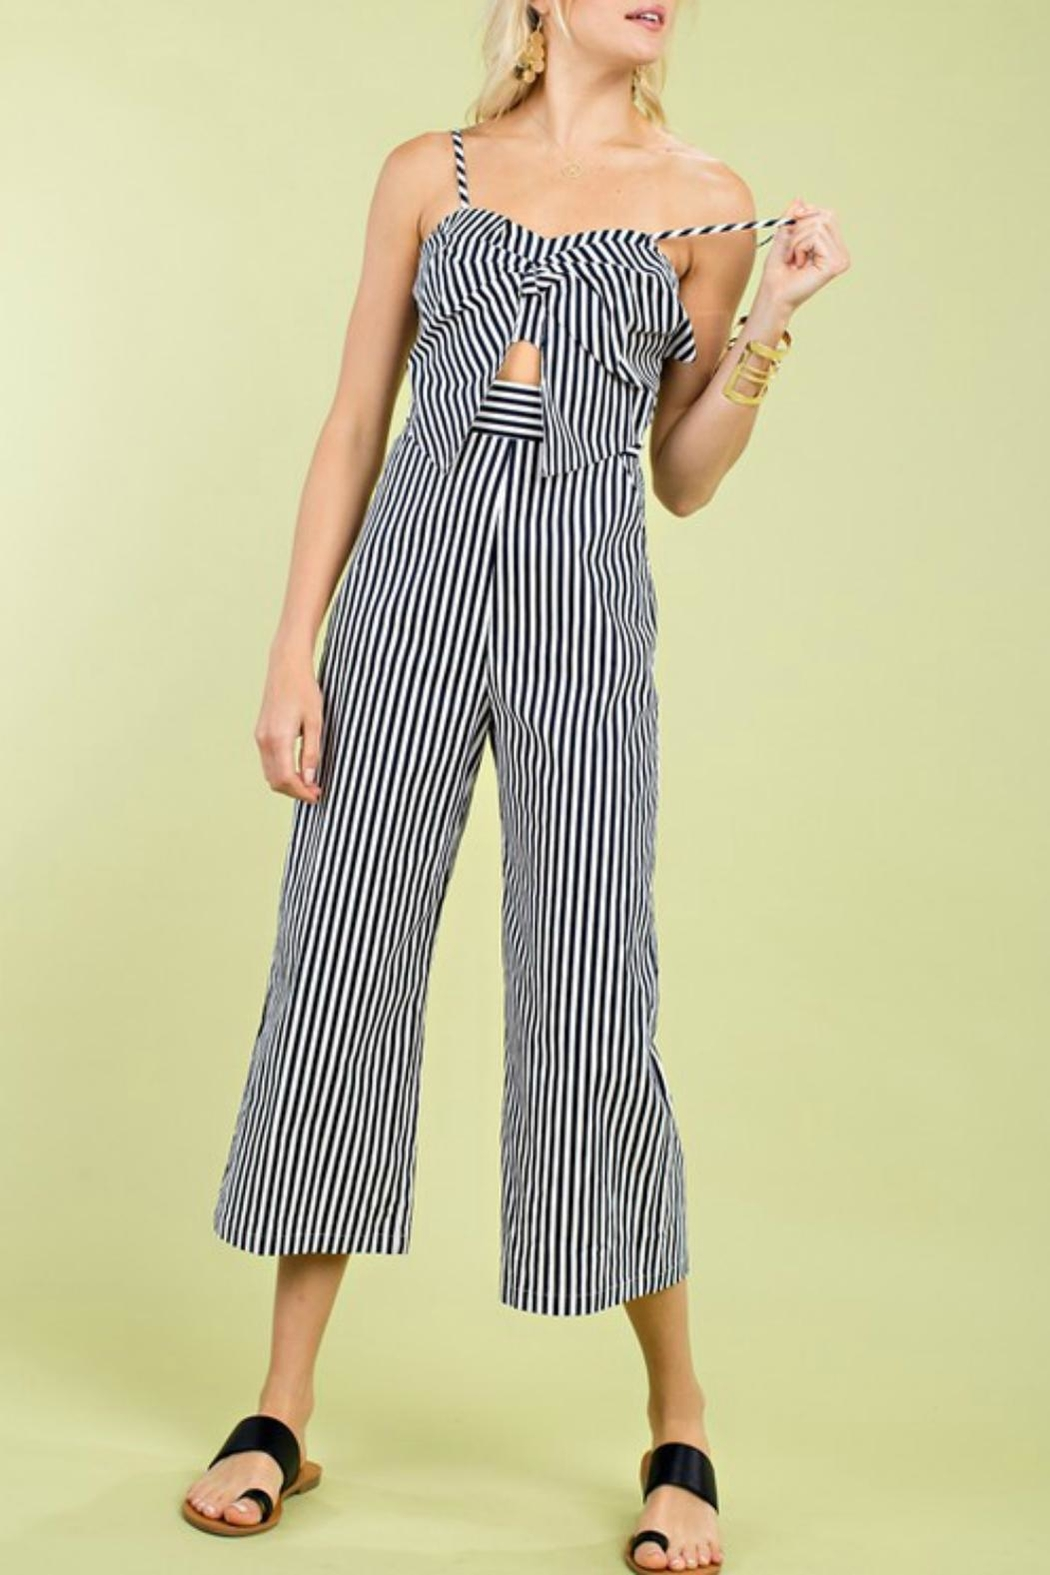 Pretty Little Things Ribbon Tie Jumpsuit - Main Image